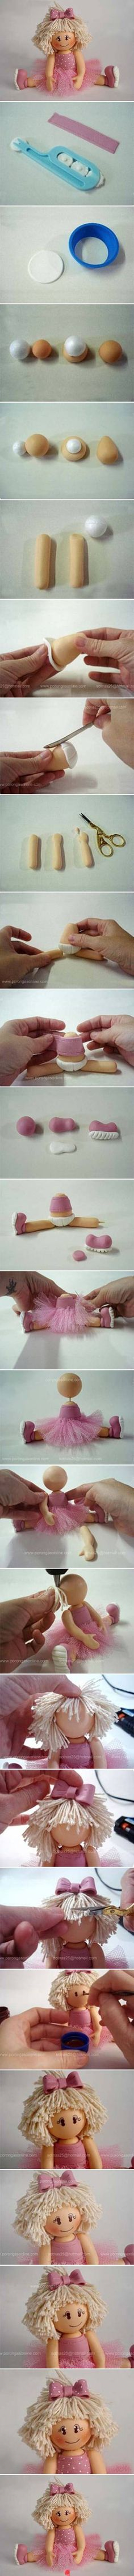 clay adorable little girl ballerina...w/photo tutorial